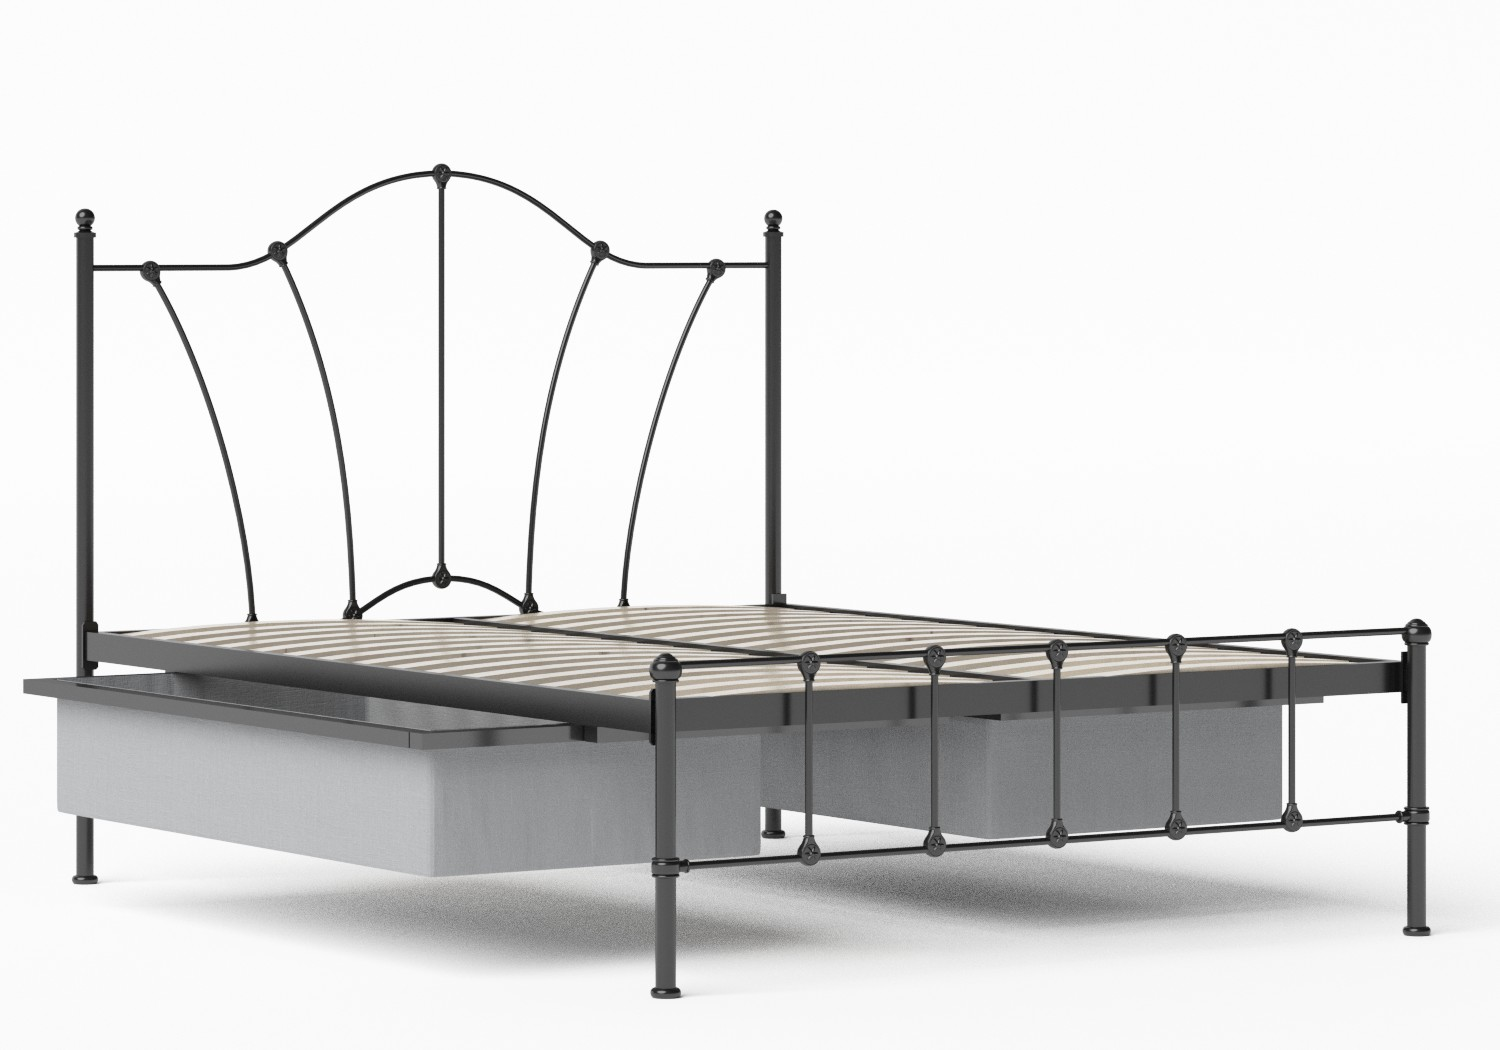 Claudia Iron/Metal Bed in Satin Black shown with underbed storage